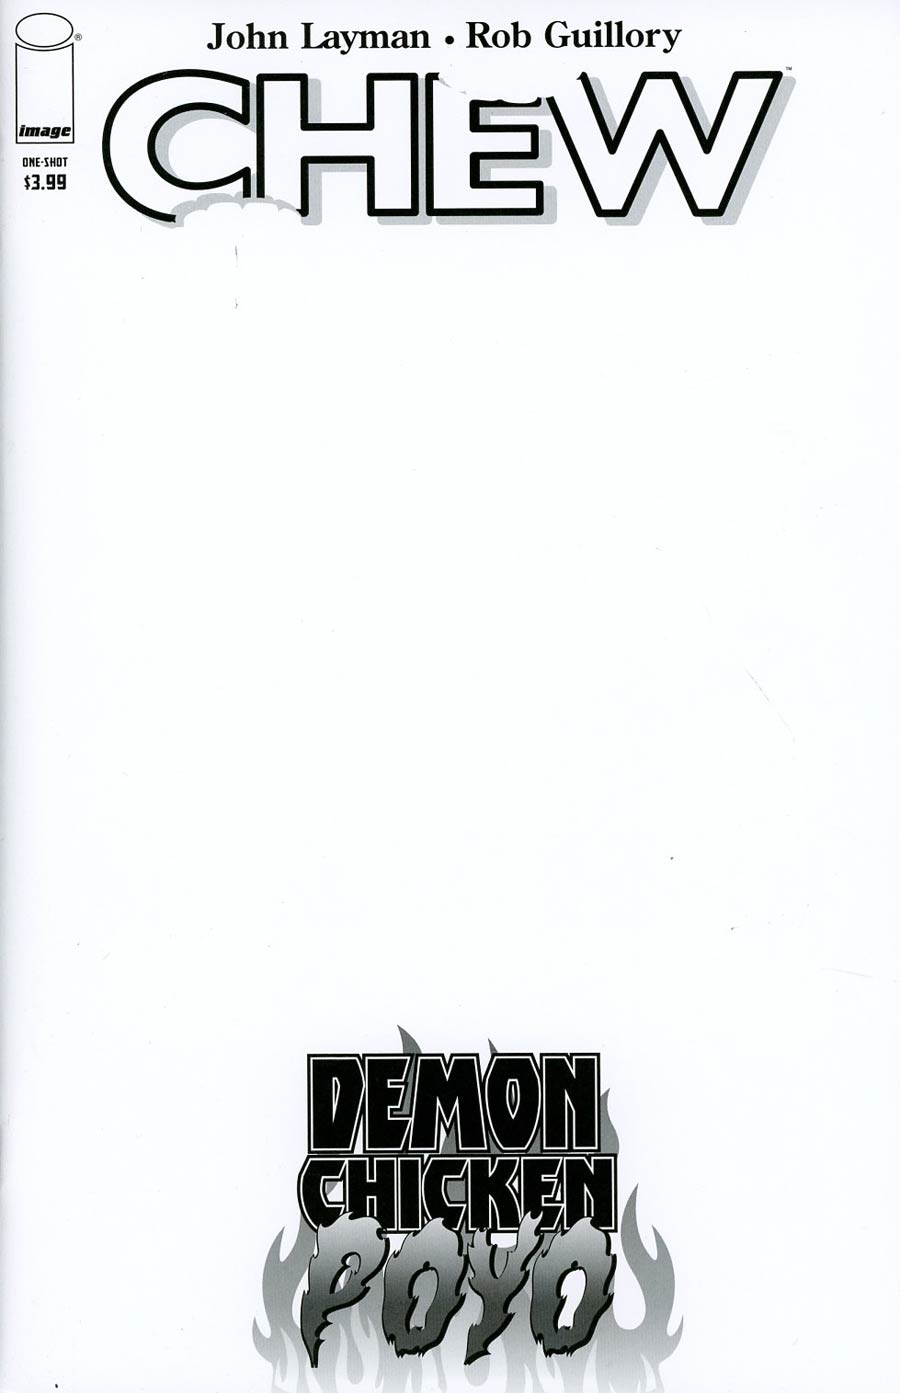 Chew Demon Chicken Poyo #1 Cover B Variant Rob Guillory Sketch Cover